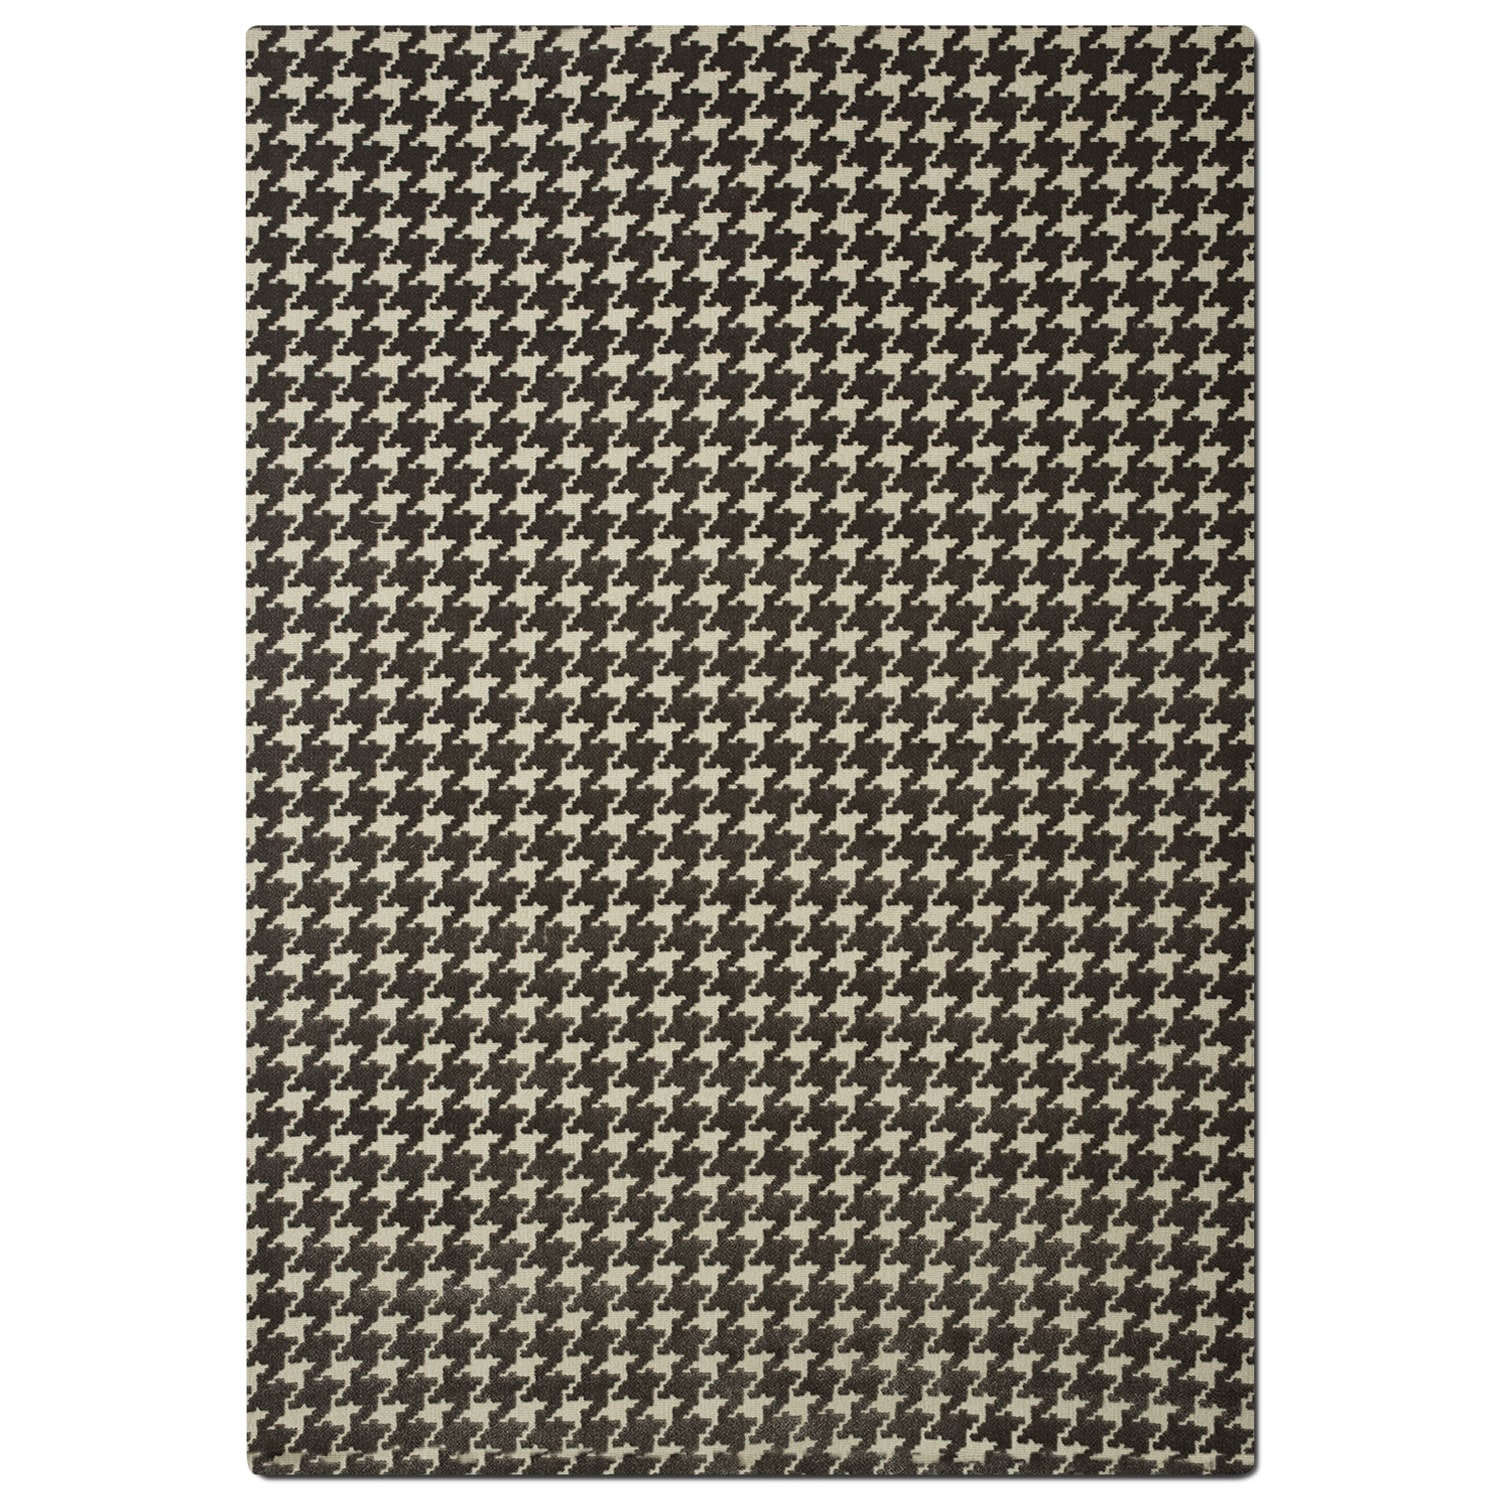 Rugs - Metro 5' x 8' Area Rug - Gray and Ivory